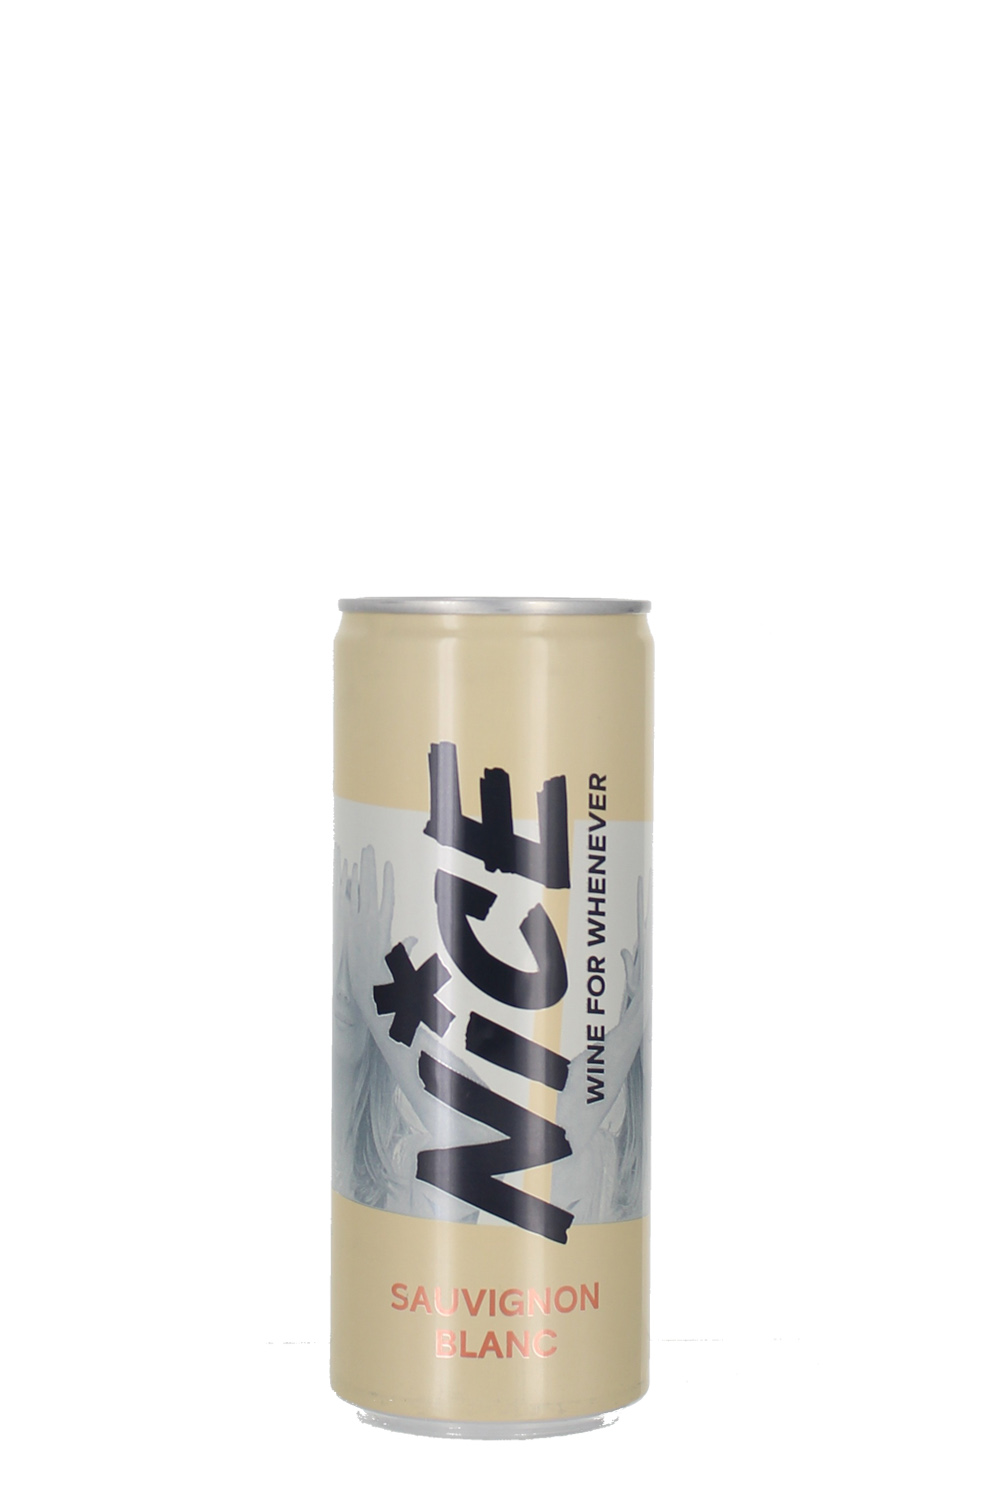 NICE, Sauvignon Blanc, 250ml Cans, 12 pack